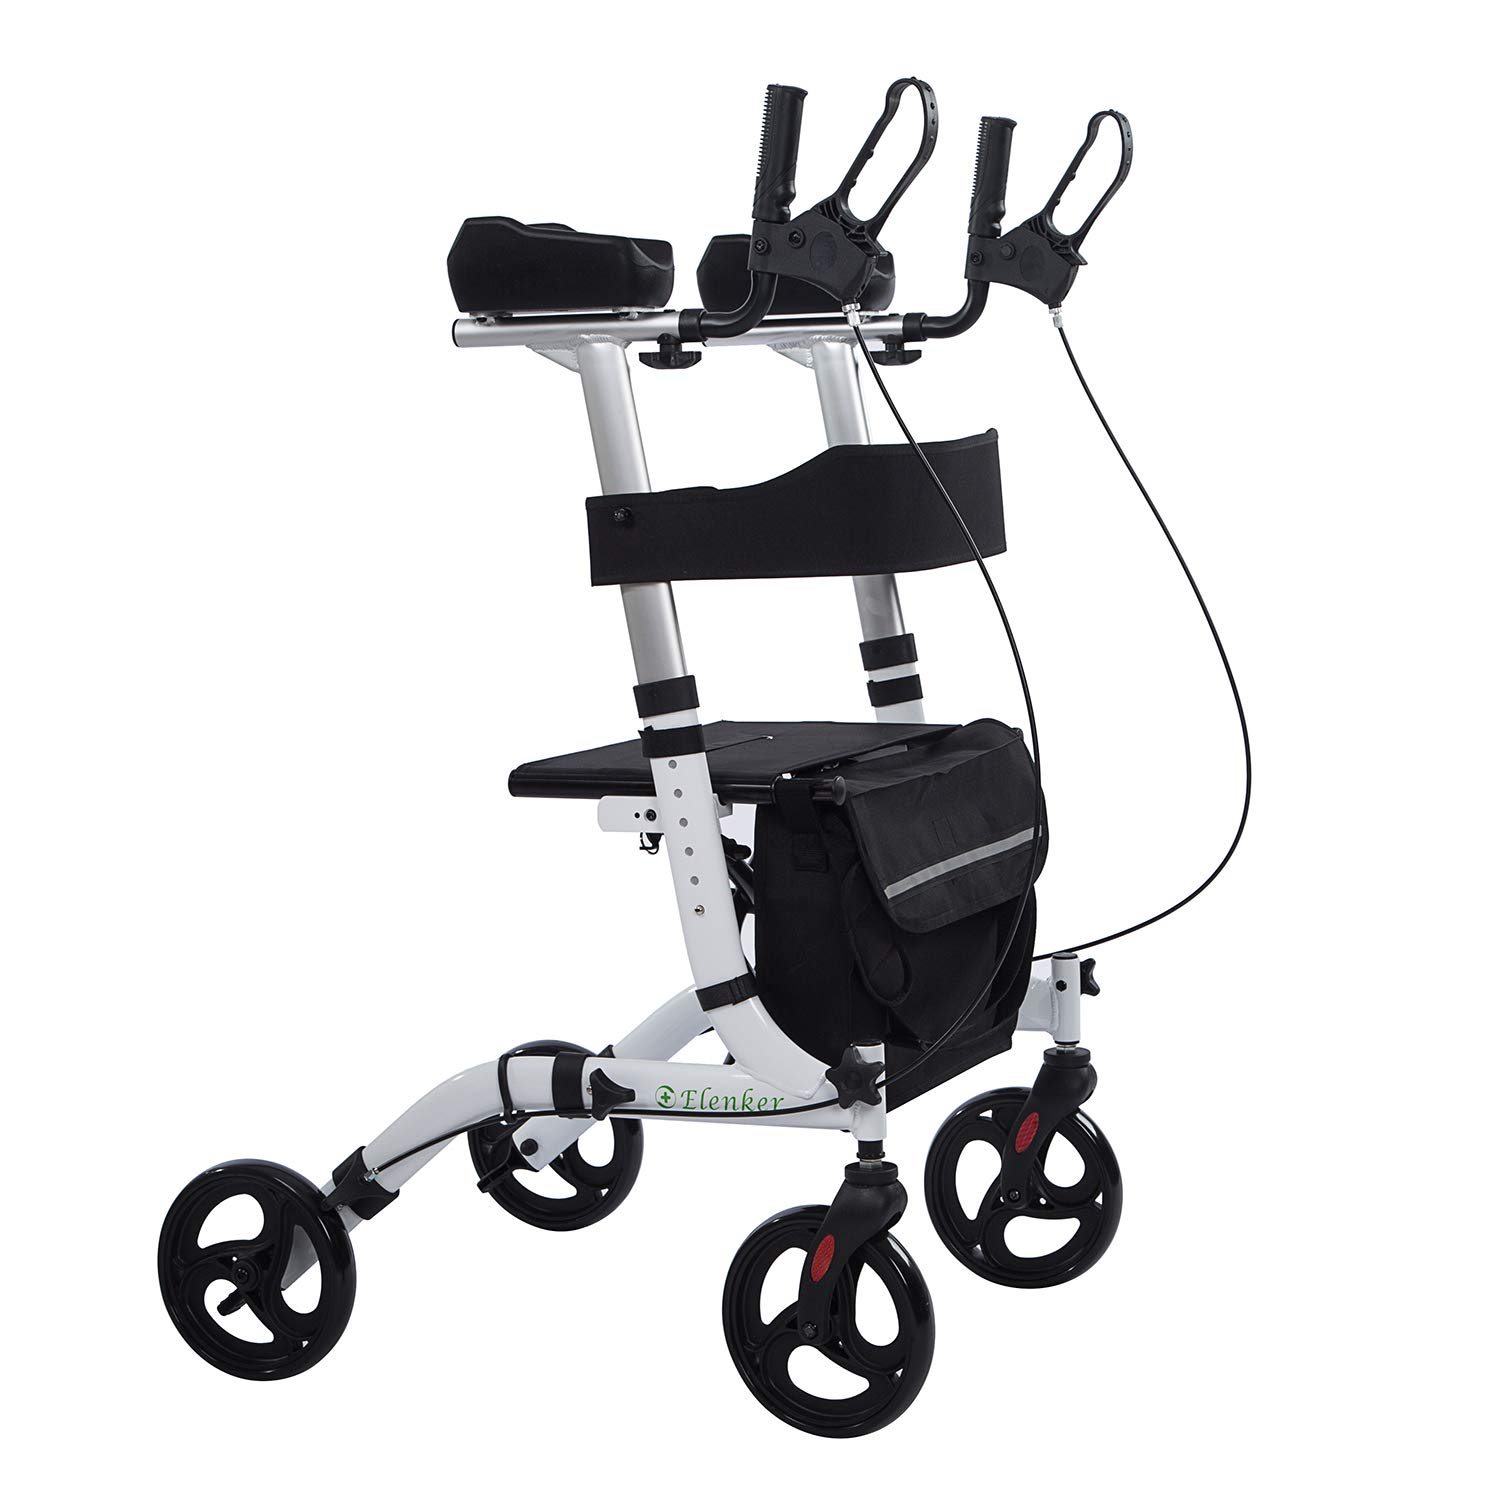 ELENKER Upright Walker, Stand Up Folding Rollator Walker Back Erect Rolling Mobility Walking Aid with Backrest Seat Padded Armrests for Seniors and Adults,White by ELENKER